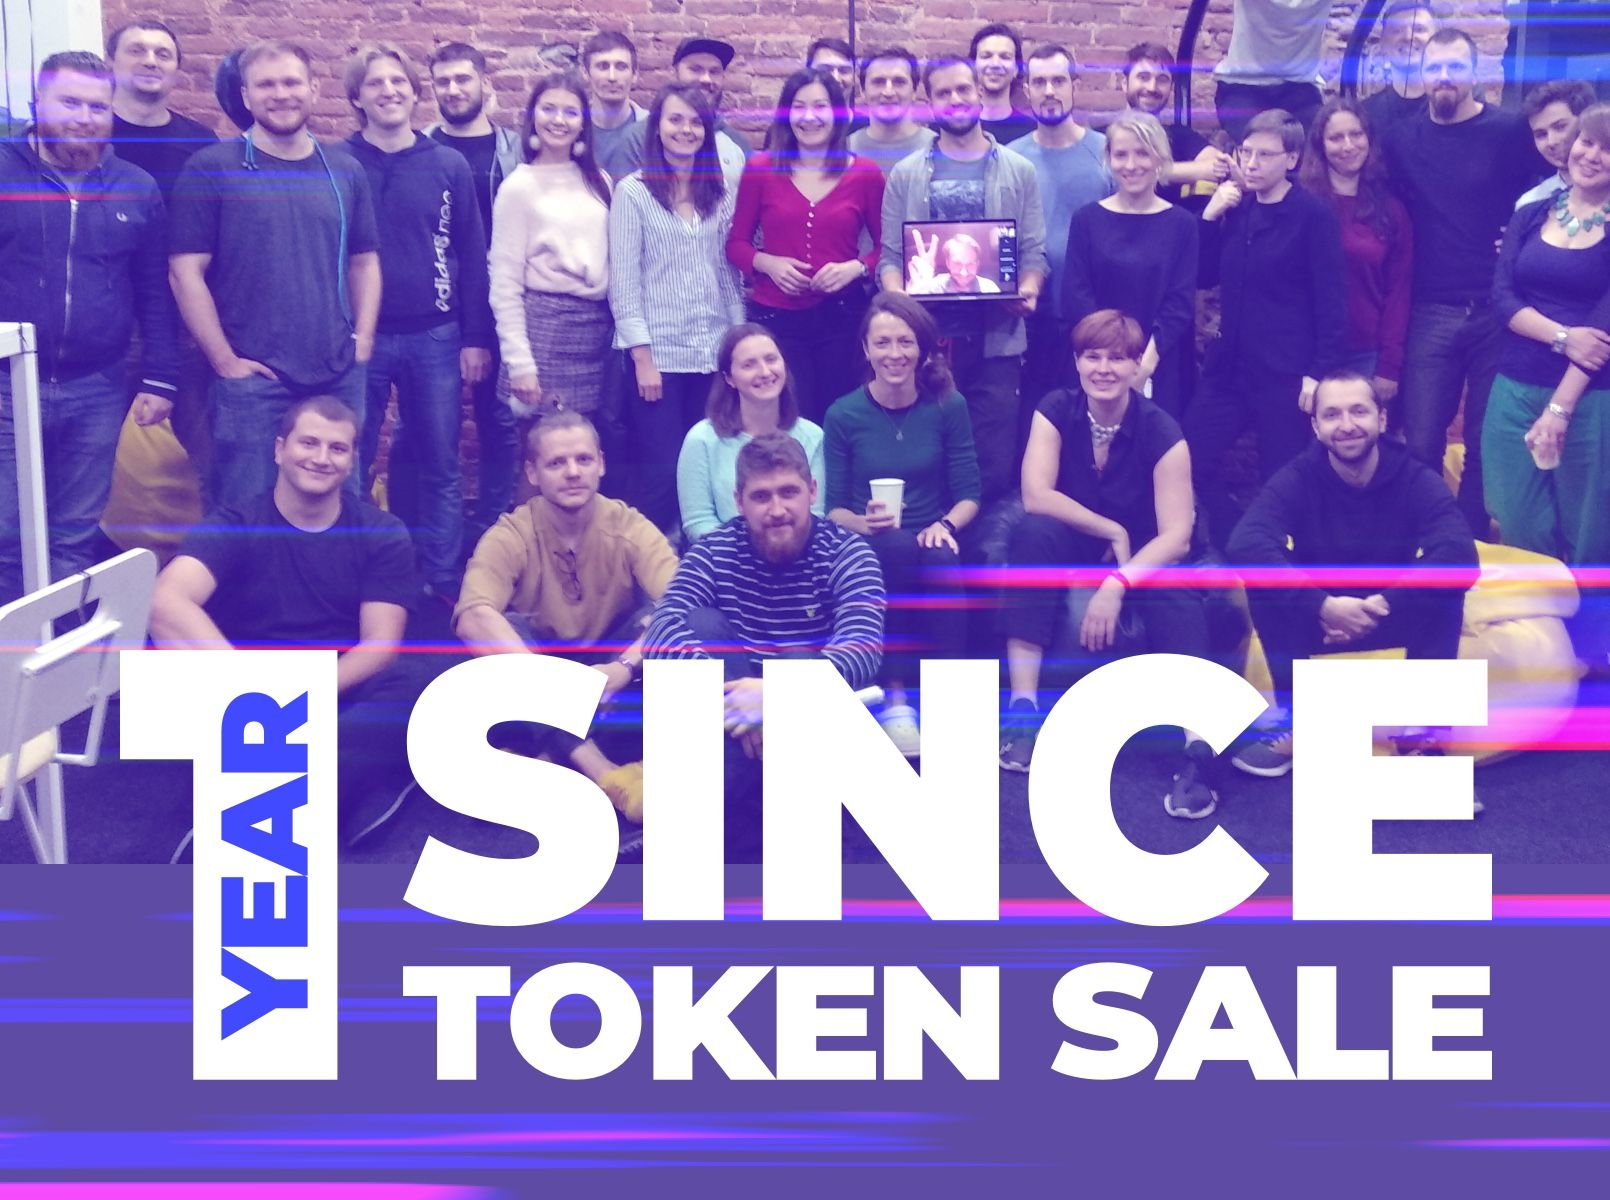 A Year Since Cindicator's Token Sale: Results, Progress, Plans